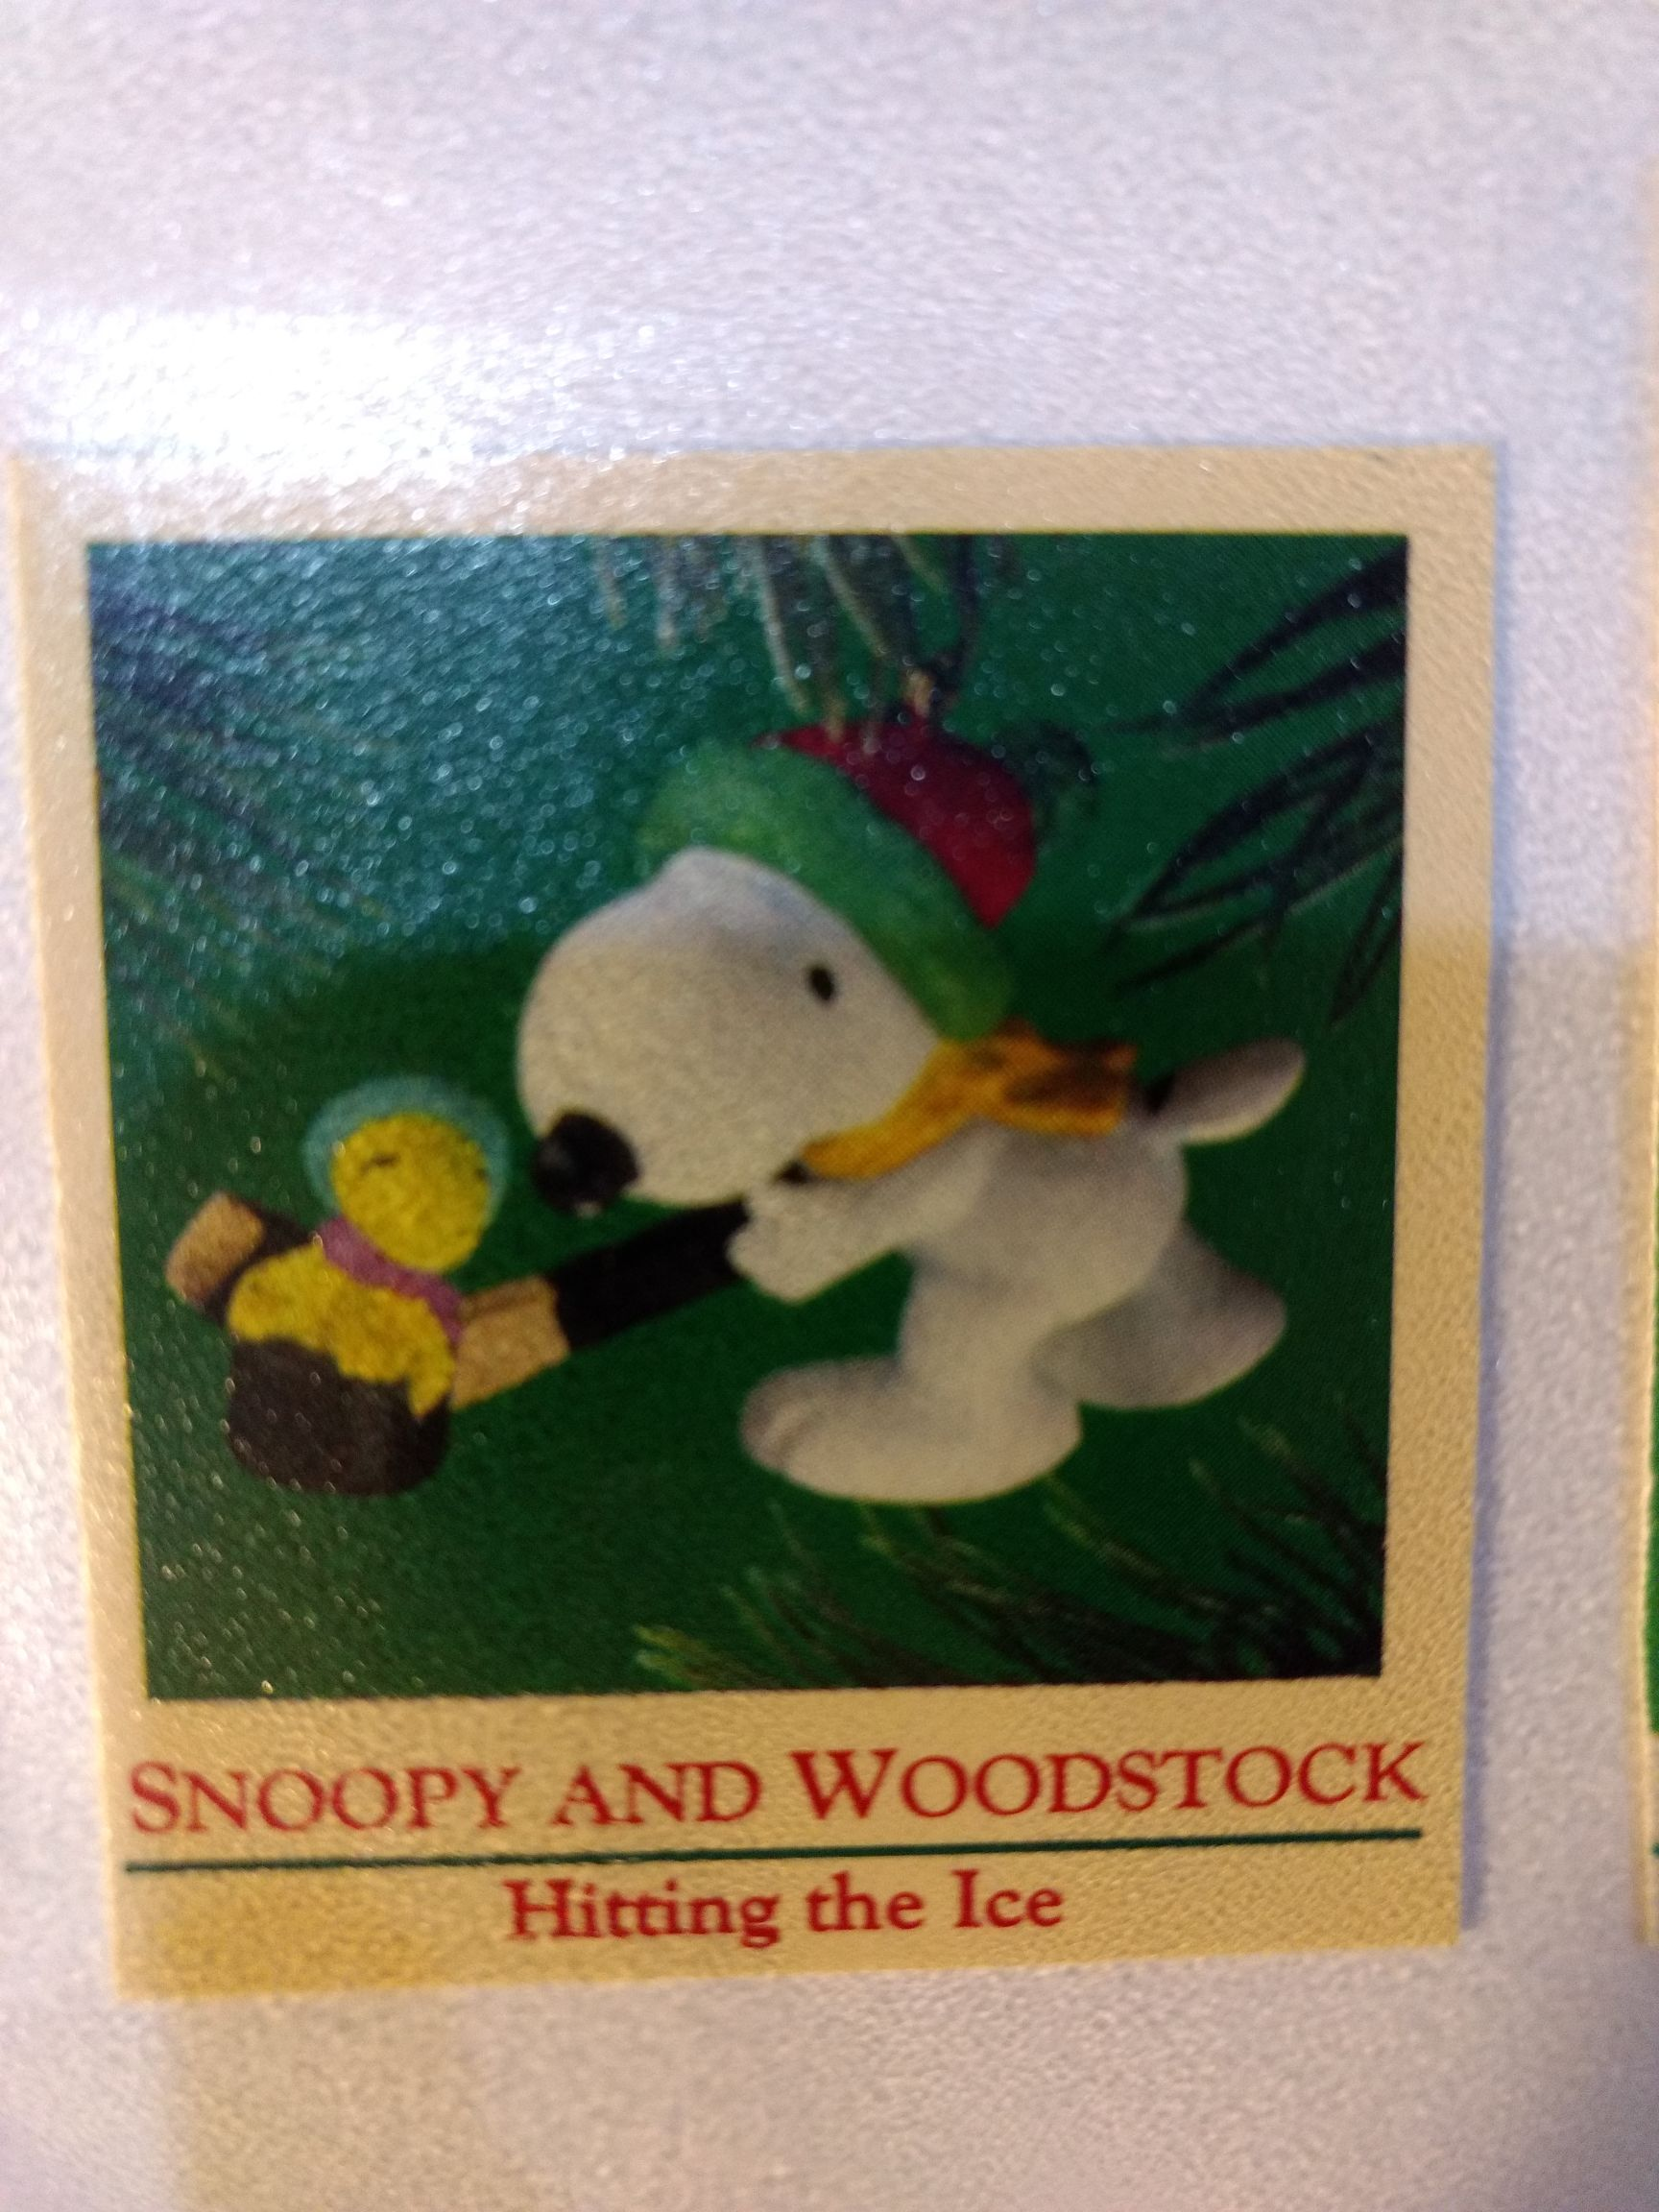 Peanuts Gang - Snoopy & Woodstock - Hitting The Ice Ornament front image (front cover)